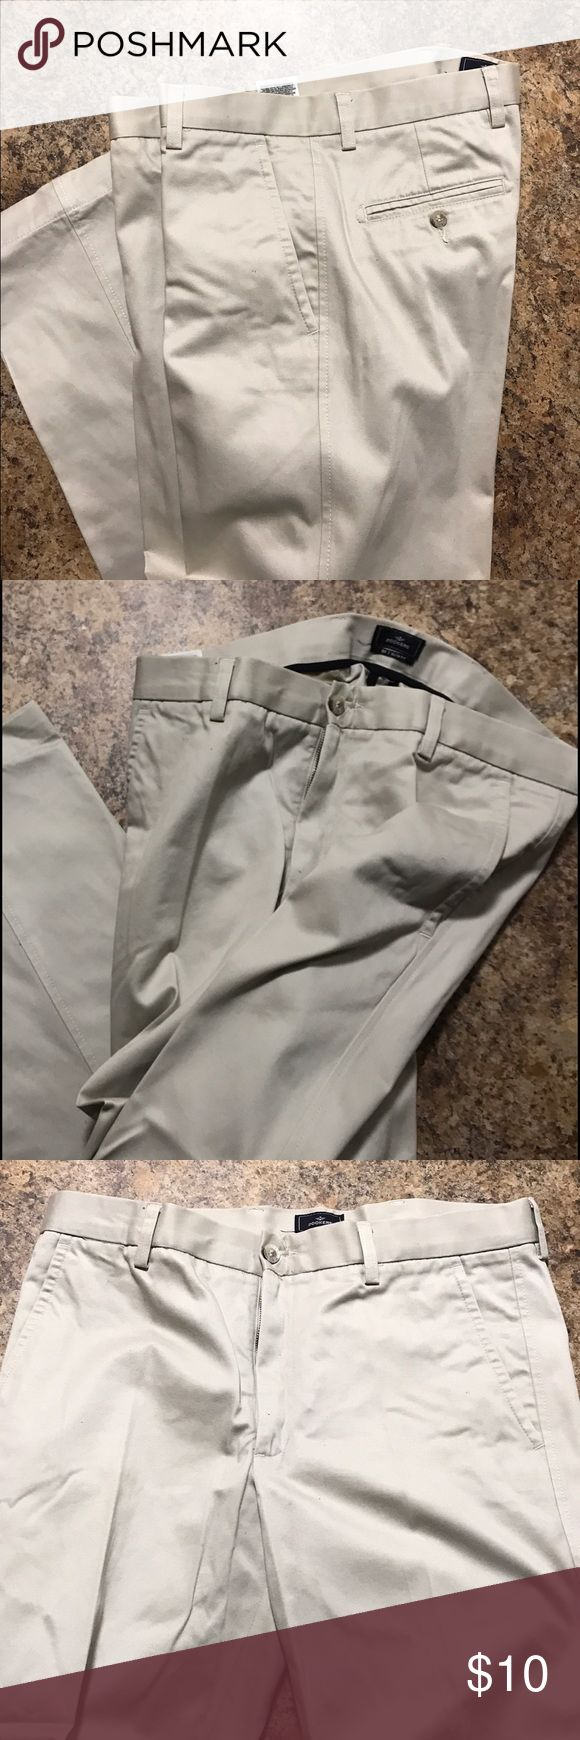 Dockers D1 Slim Fit Khaki Dress Pants- Size 34x32 Dockers D1 Slim Fit Khaki Dress Pants- Size 34. Worn twice. Dockers Pants Dress